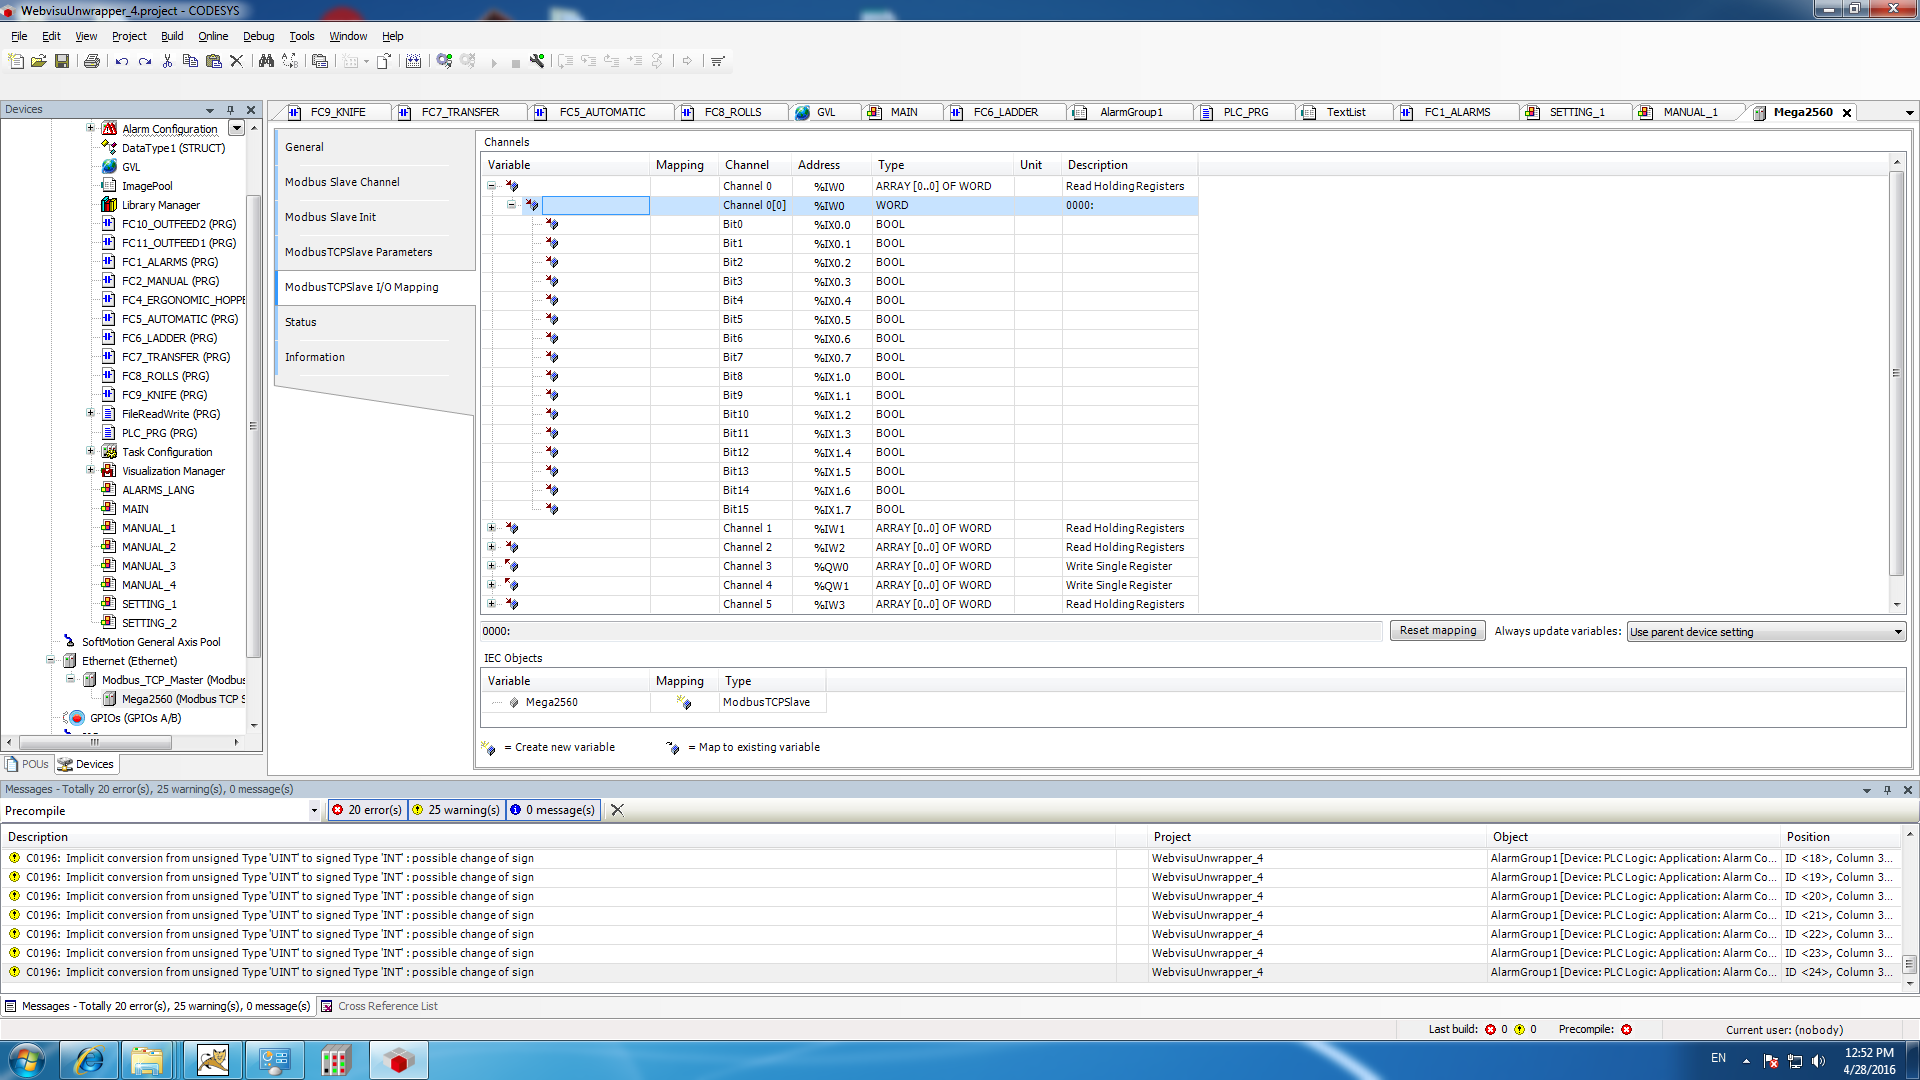 IMG: ModBus_Config.png